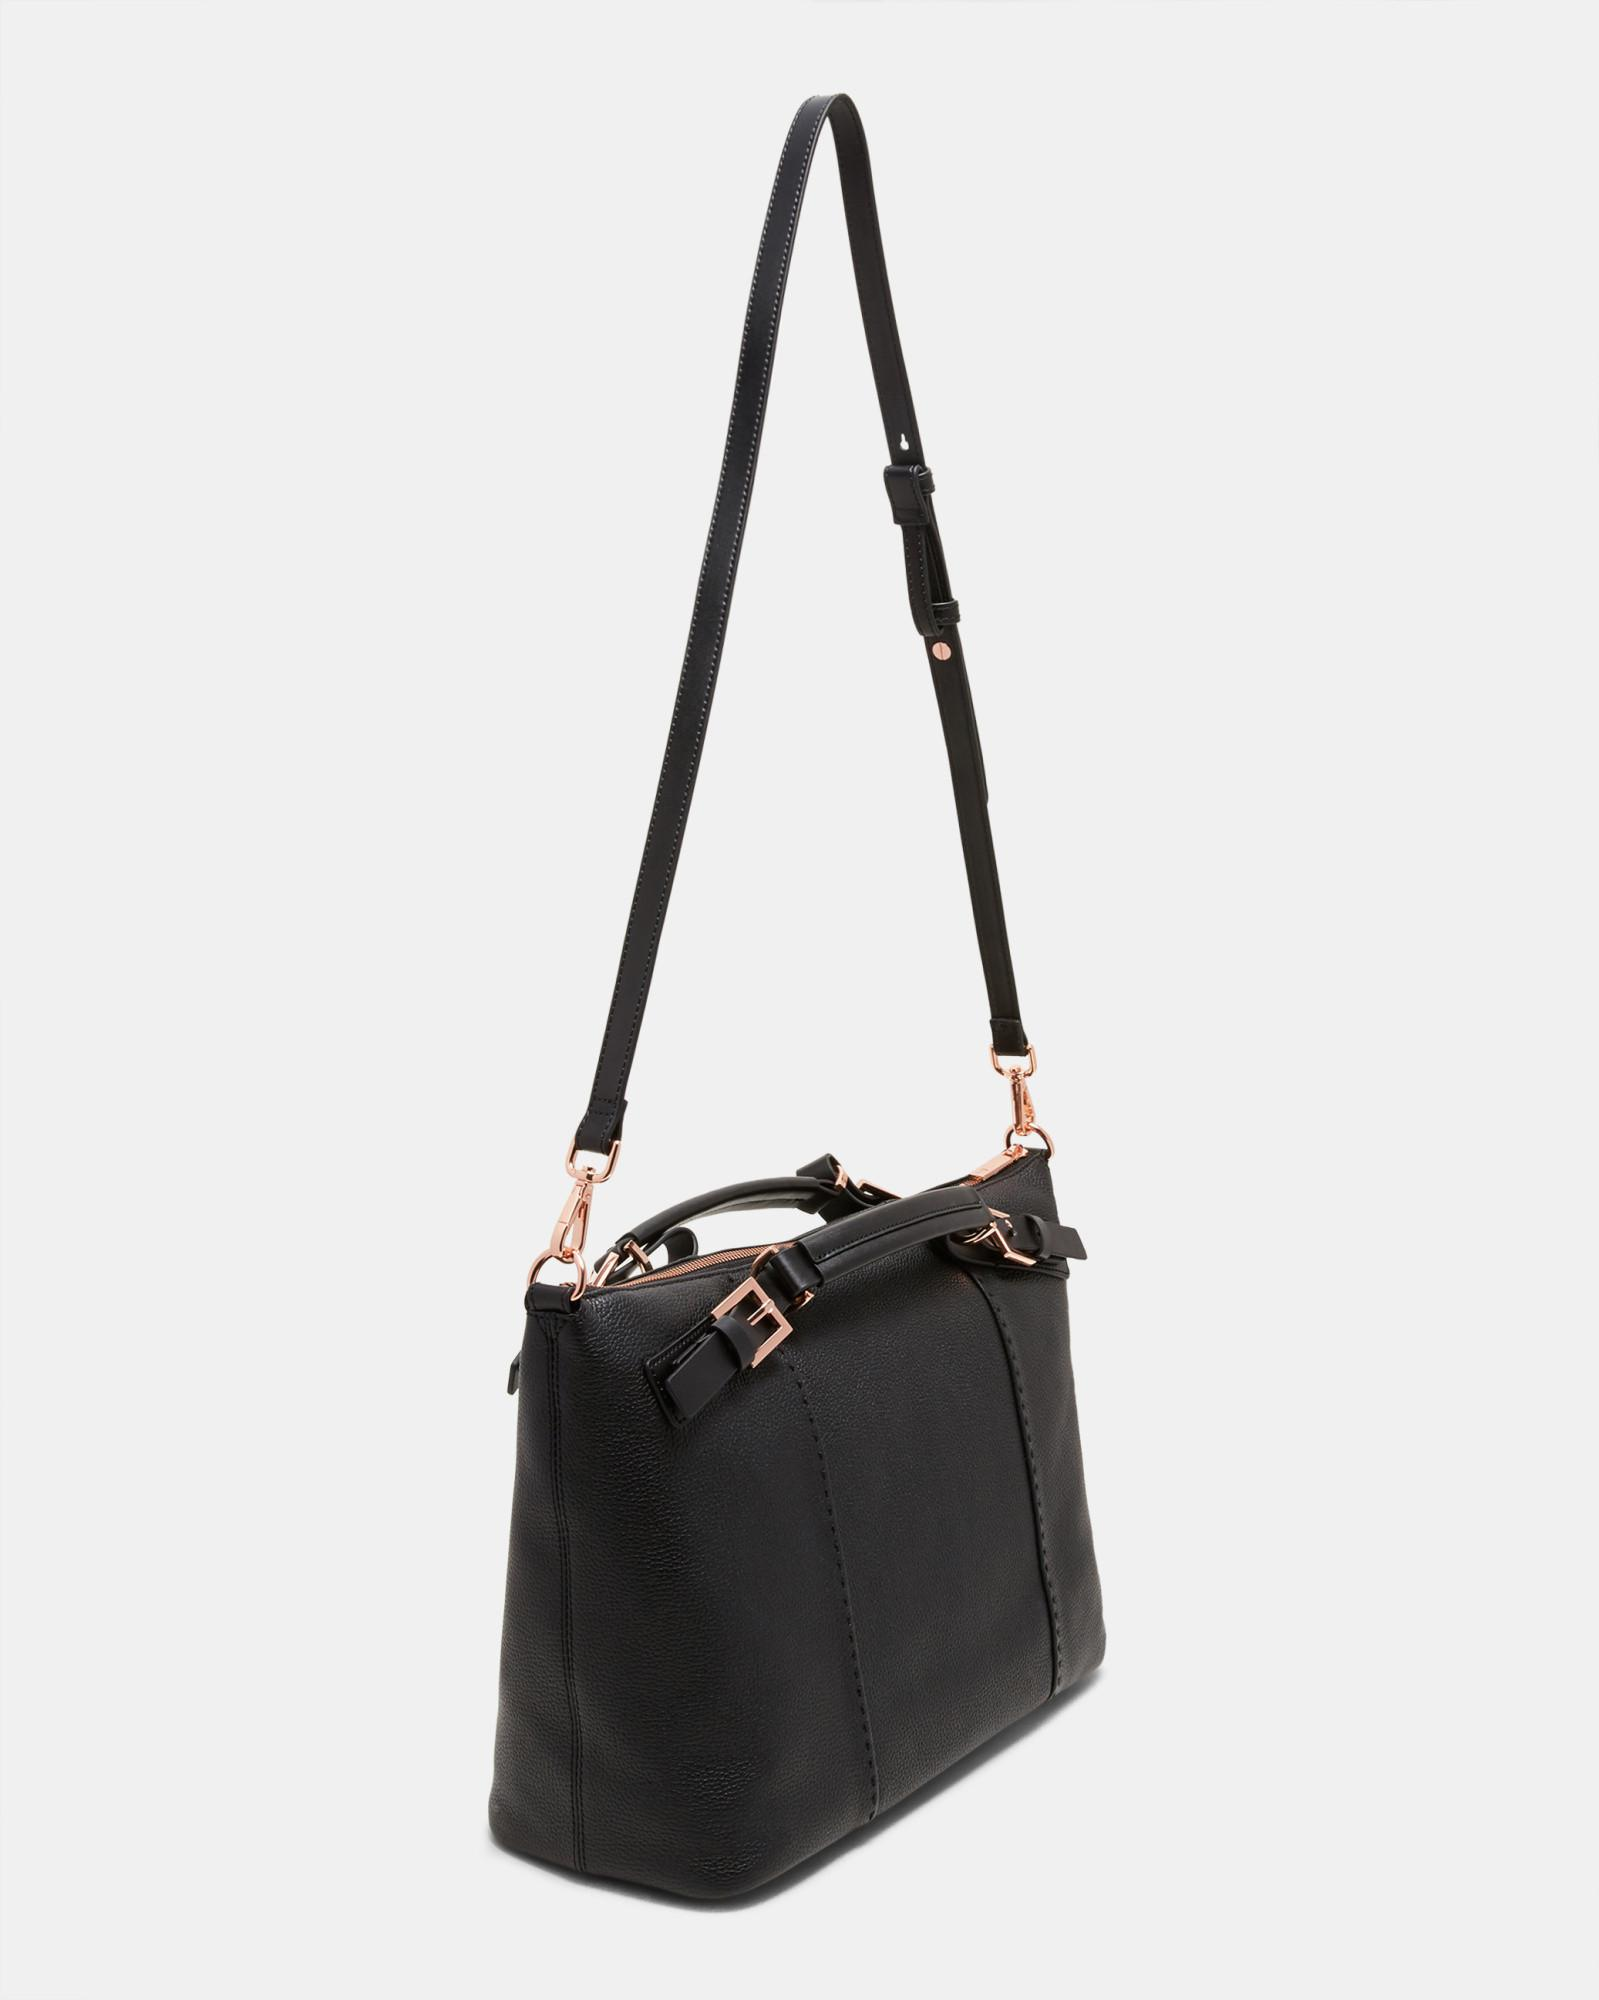 73eaefd3c Lyst - Ted Baker Pop Handle Large Leather Tote Bag in Black